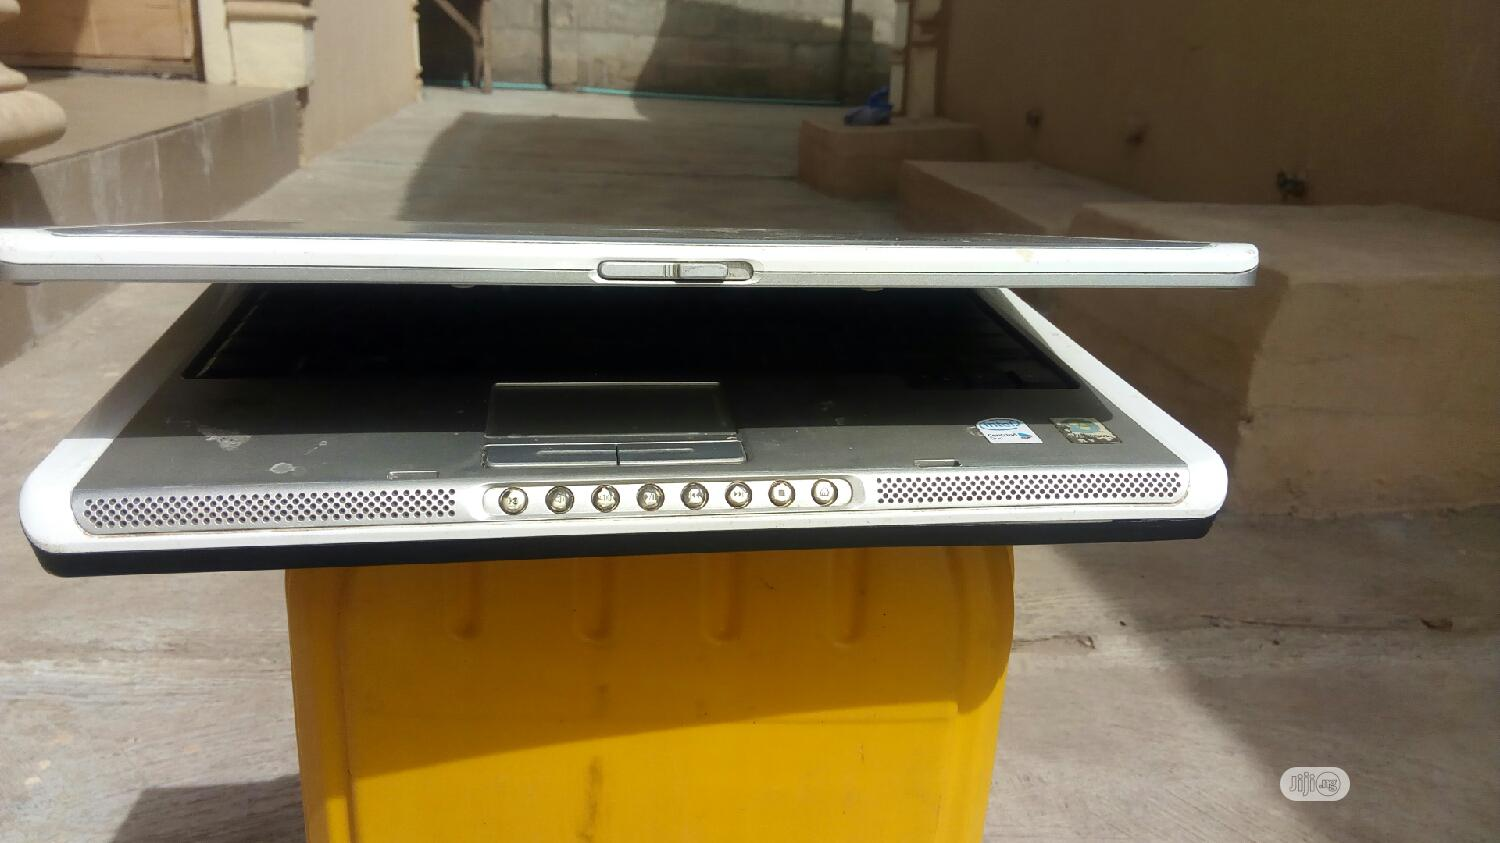 Laptop Dell 2GB Intel Core 2 Duo HDD 160GB | Laptops & Computers for sale in Ogbomosho North, Oyo State, Nigeria